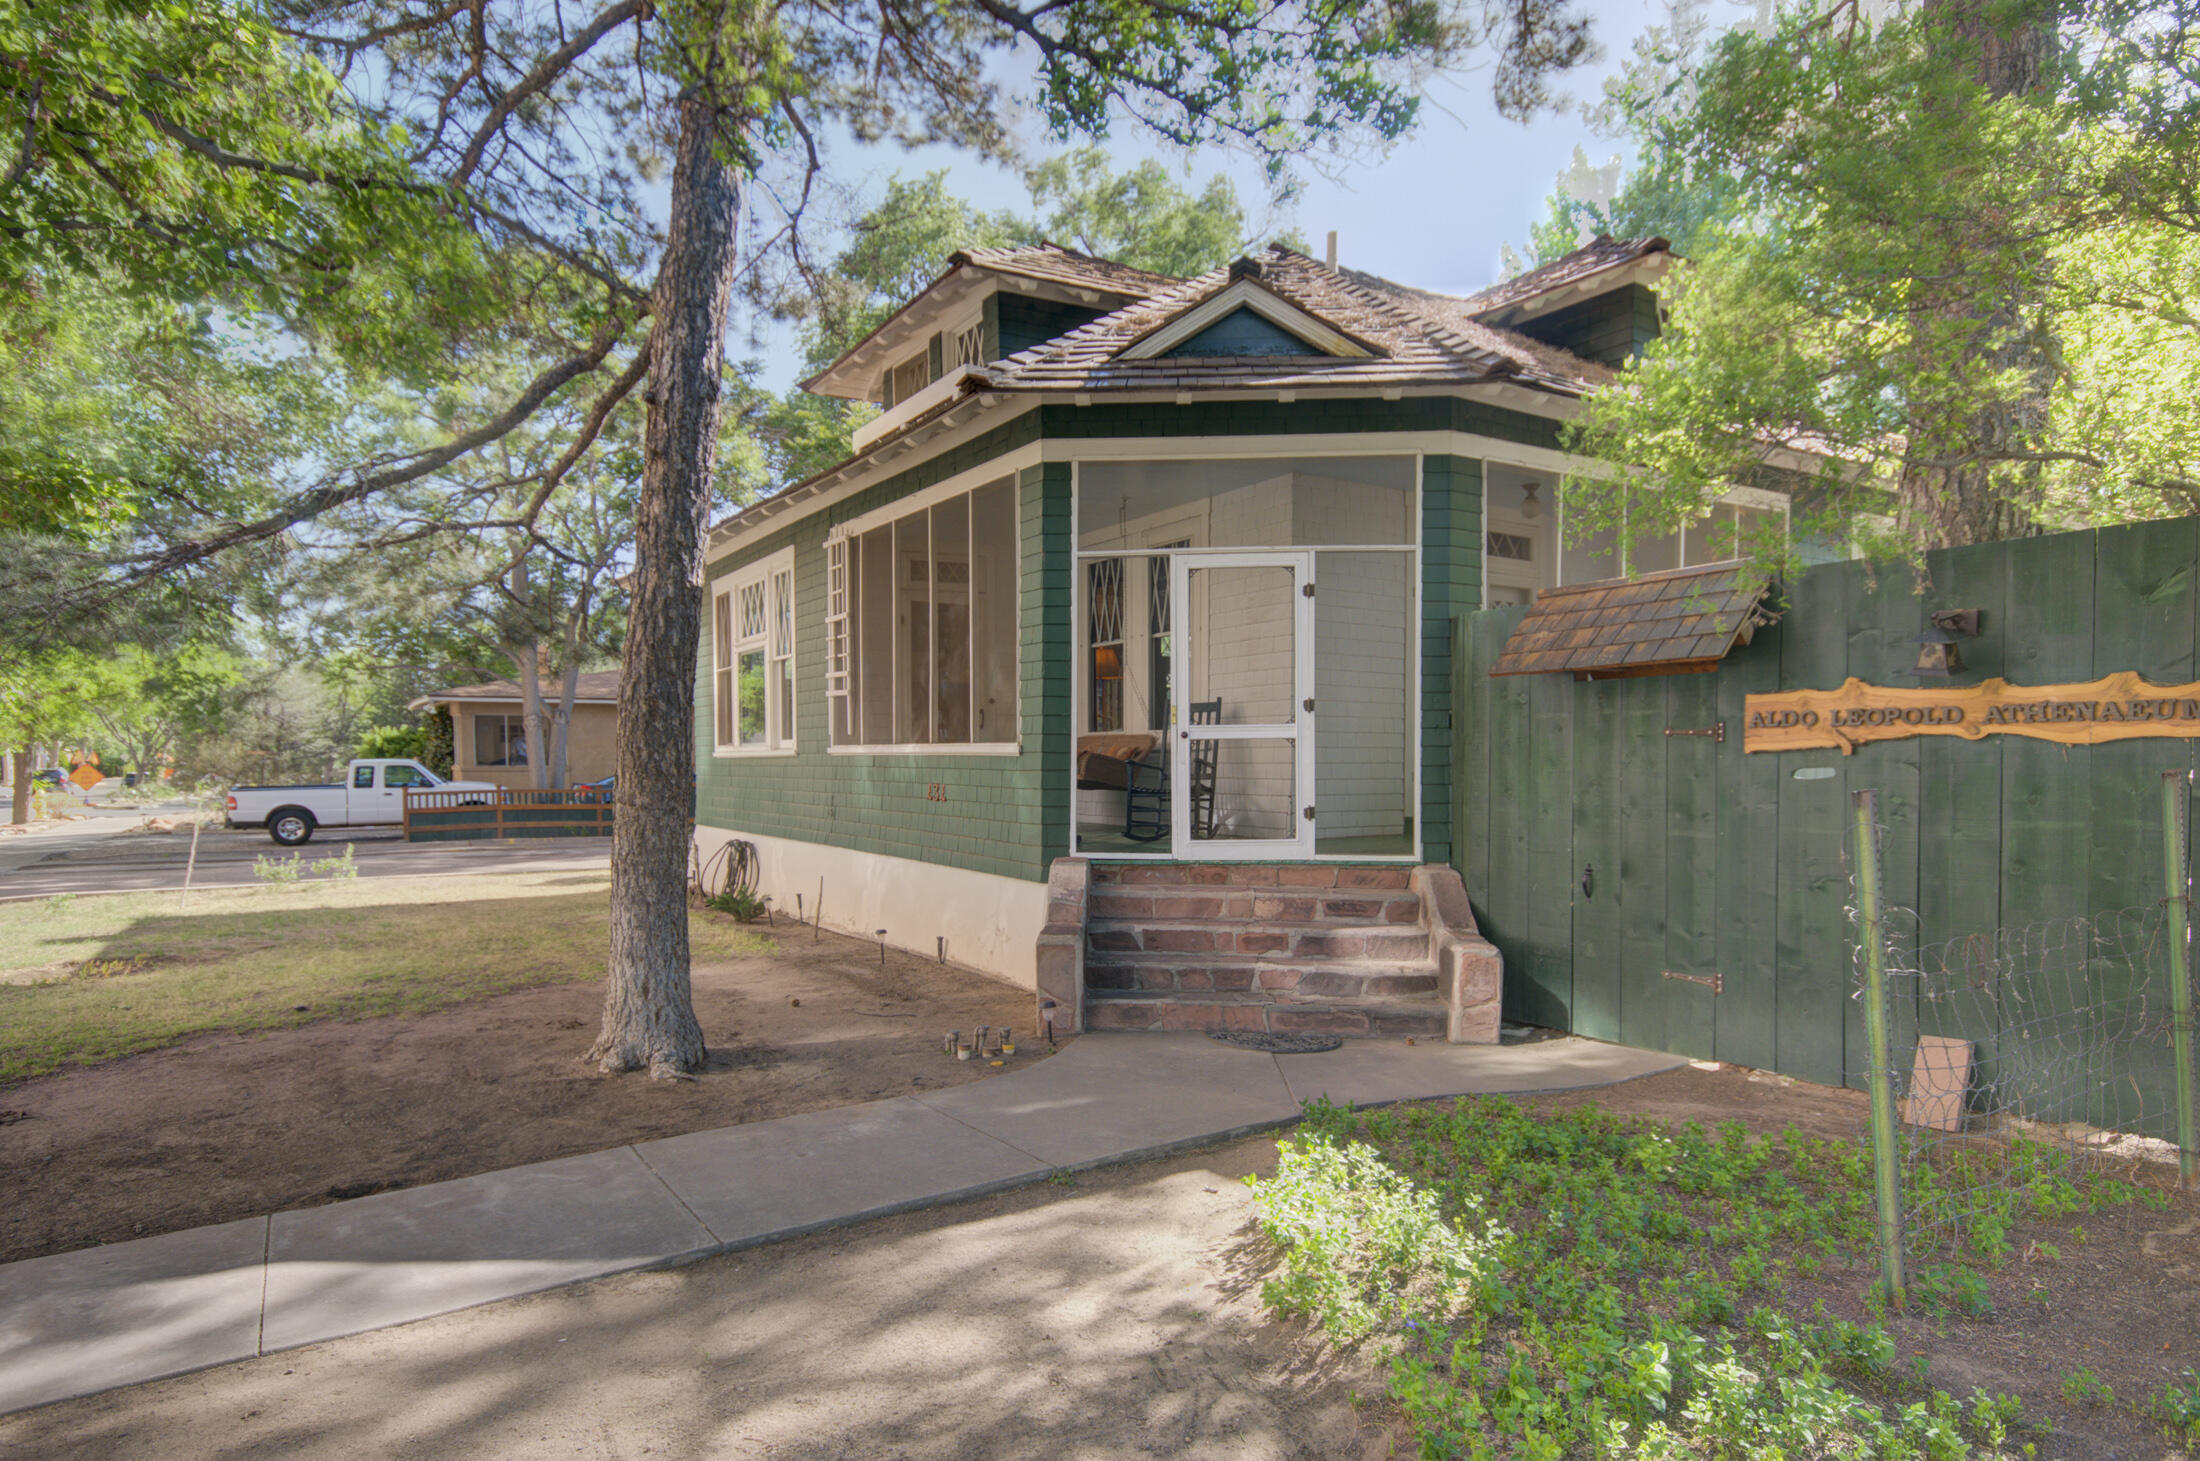 Lovingly restored Craftsman bungalow in popular Huning Castle neighborhood on large lot with backyard access. Registered in the historical registry as the Aldo Leopold historic district. Remodel completed in 1995- modern conveniences with old world charm. Authenticity of the period in original wood work, diamond- paned windows, built-in buffet and bookcases. Coffered ceiling crowns the living room with striking flagstone fireplace. Douglas fir red cedar shingle roof  done 2011 and oiled in 2019. Heartland replica stove.  Property includes 2 income-producing studio apartments. Huge carport, pergolas, trees and native plants offer serenity in the midst of city life. Walk to bosque, restaurants, Old Town.  Many possibilities!  Furniture stays.  A treasure trove awaits new owner!